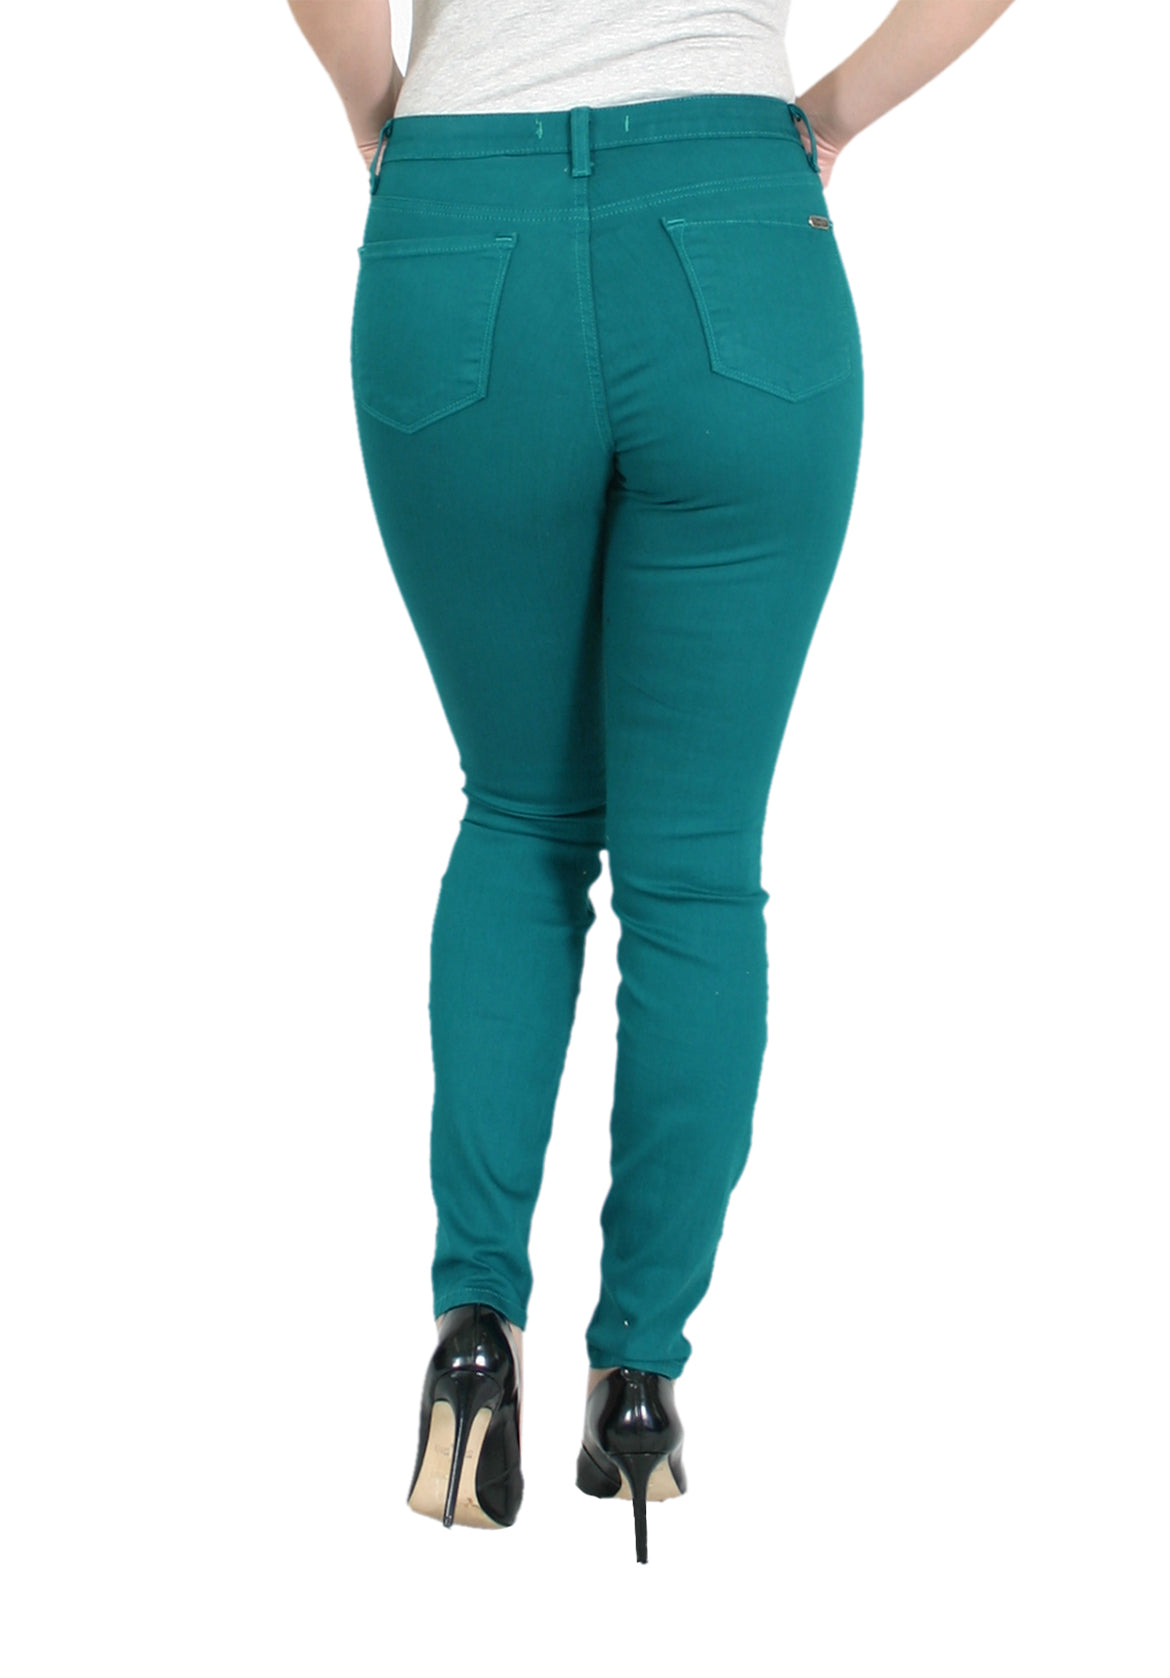 TrueSlim™ Blue Zircon Jeggings for Women